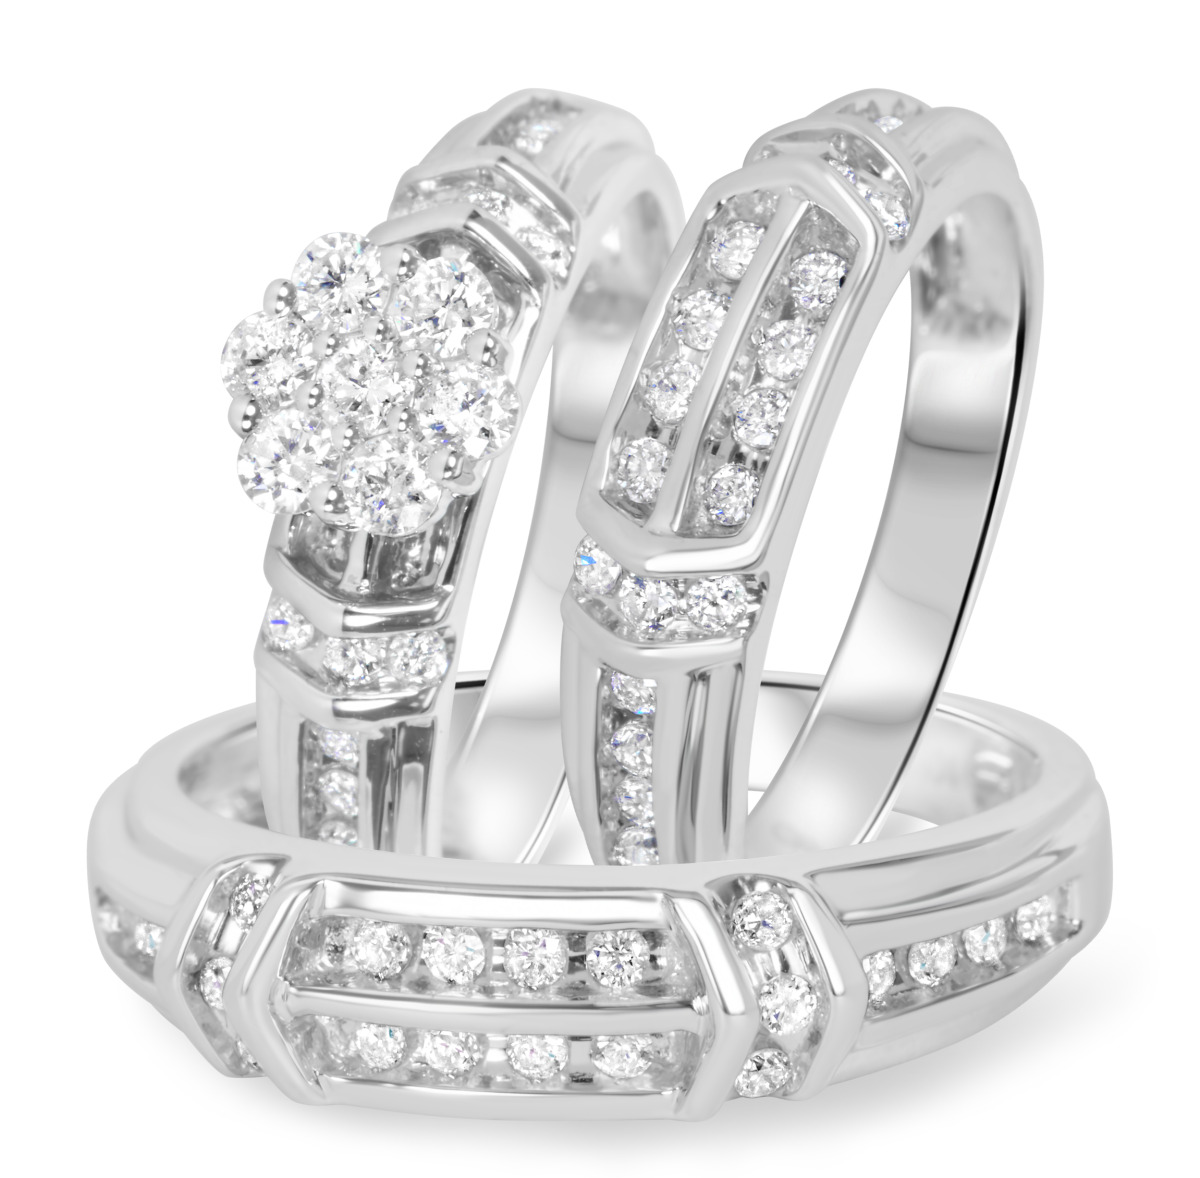 1 1/10 Carat T.W. Diamond Trio Matching Wedding Ring Set 14K White Gold